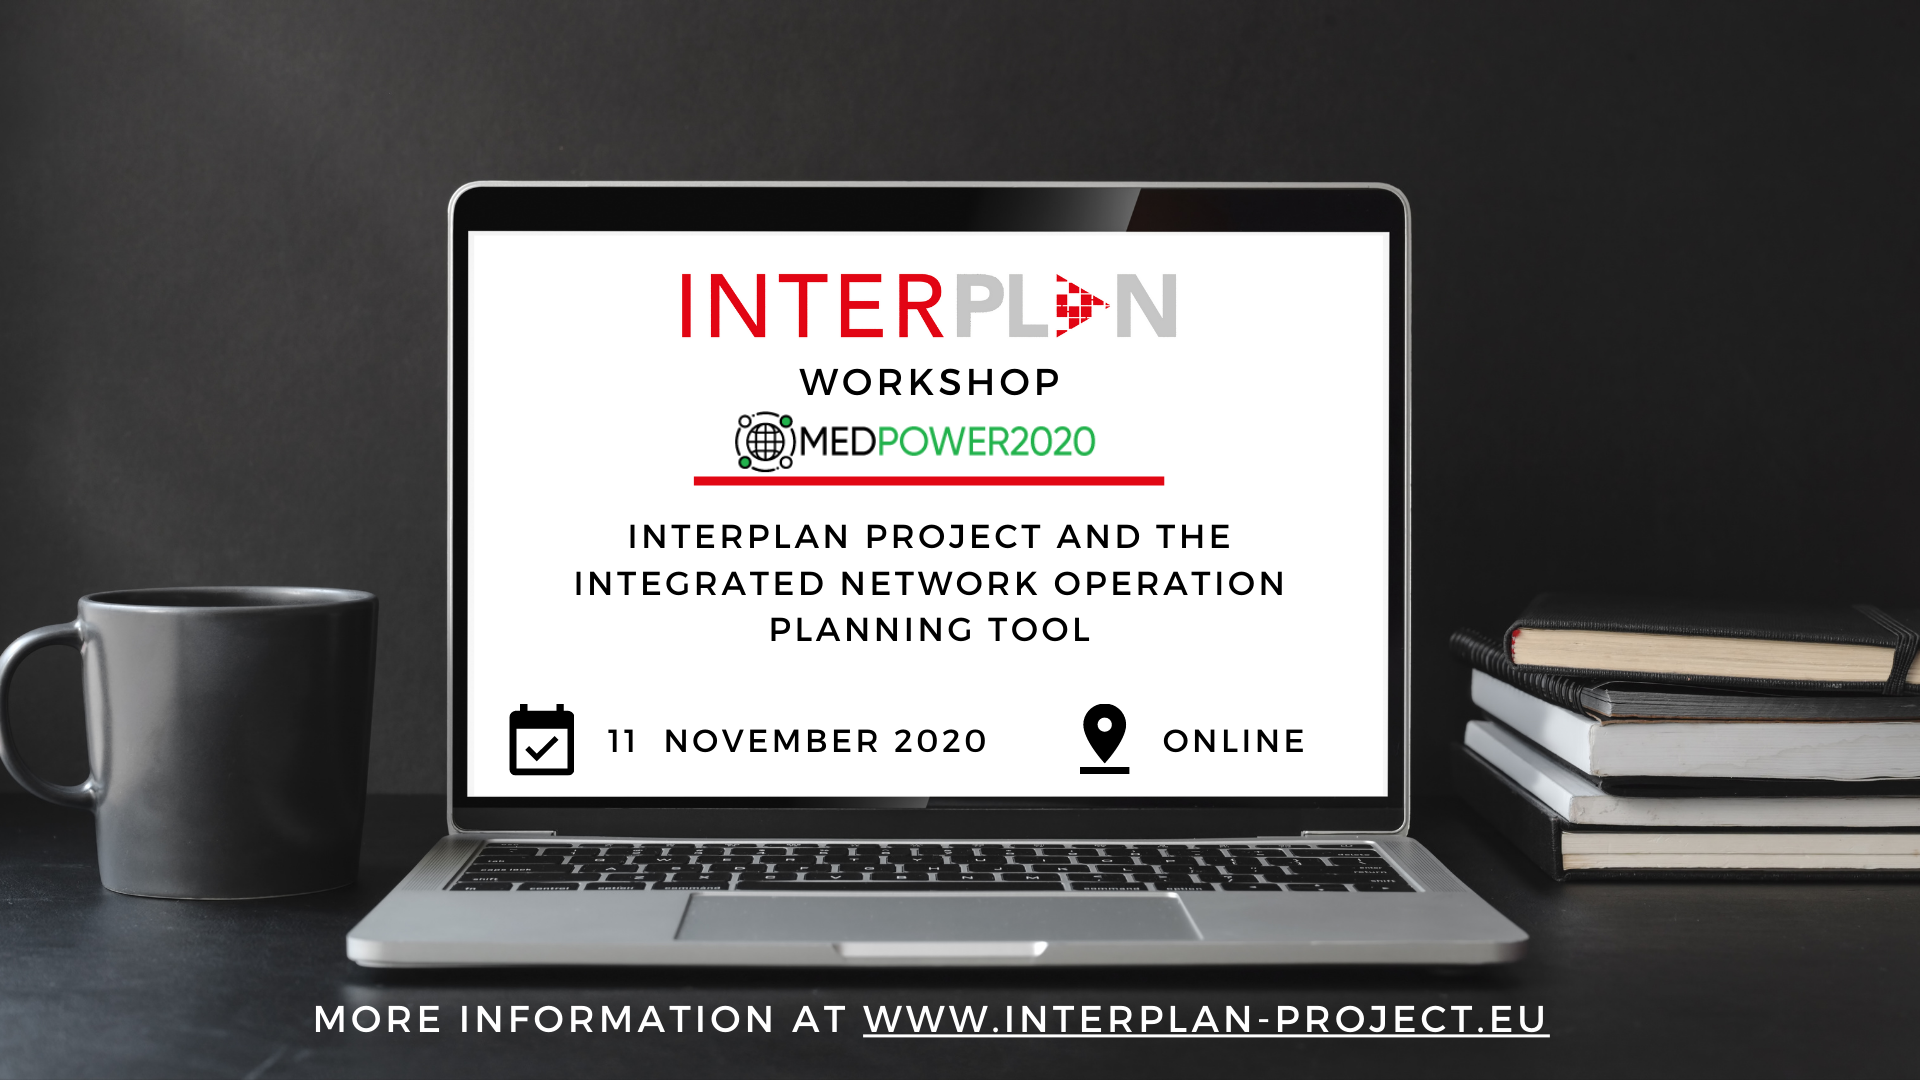 INTERPLAN in MedPower 2020: Join our workshop